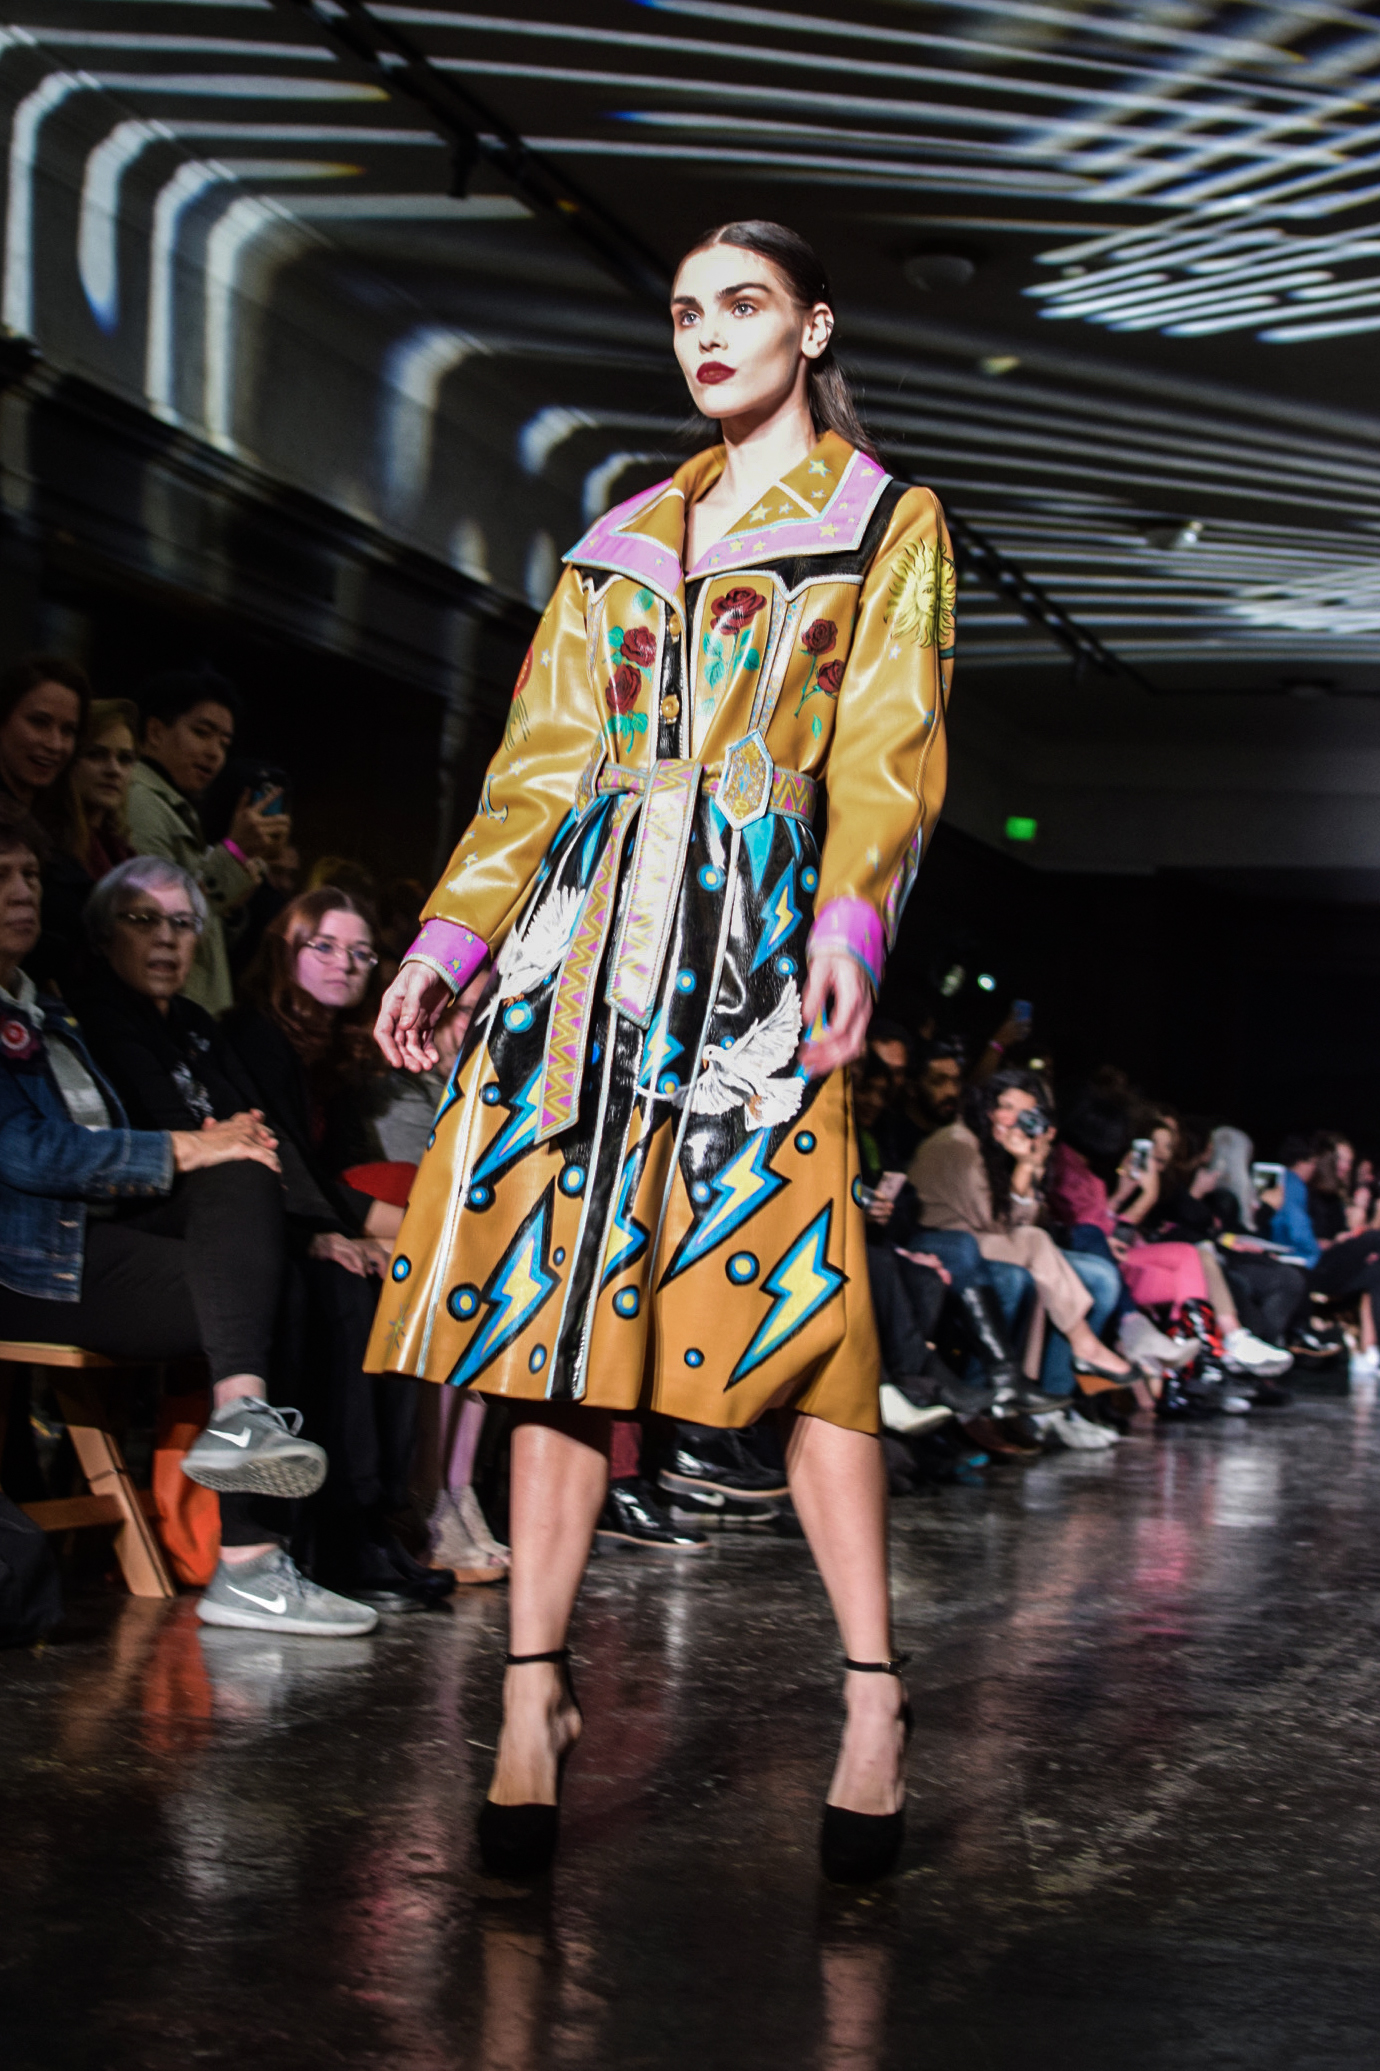 Vegan Fashion Week 2019 - Hey Mishka 12